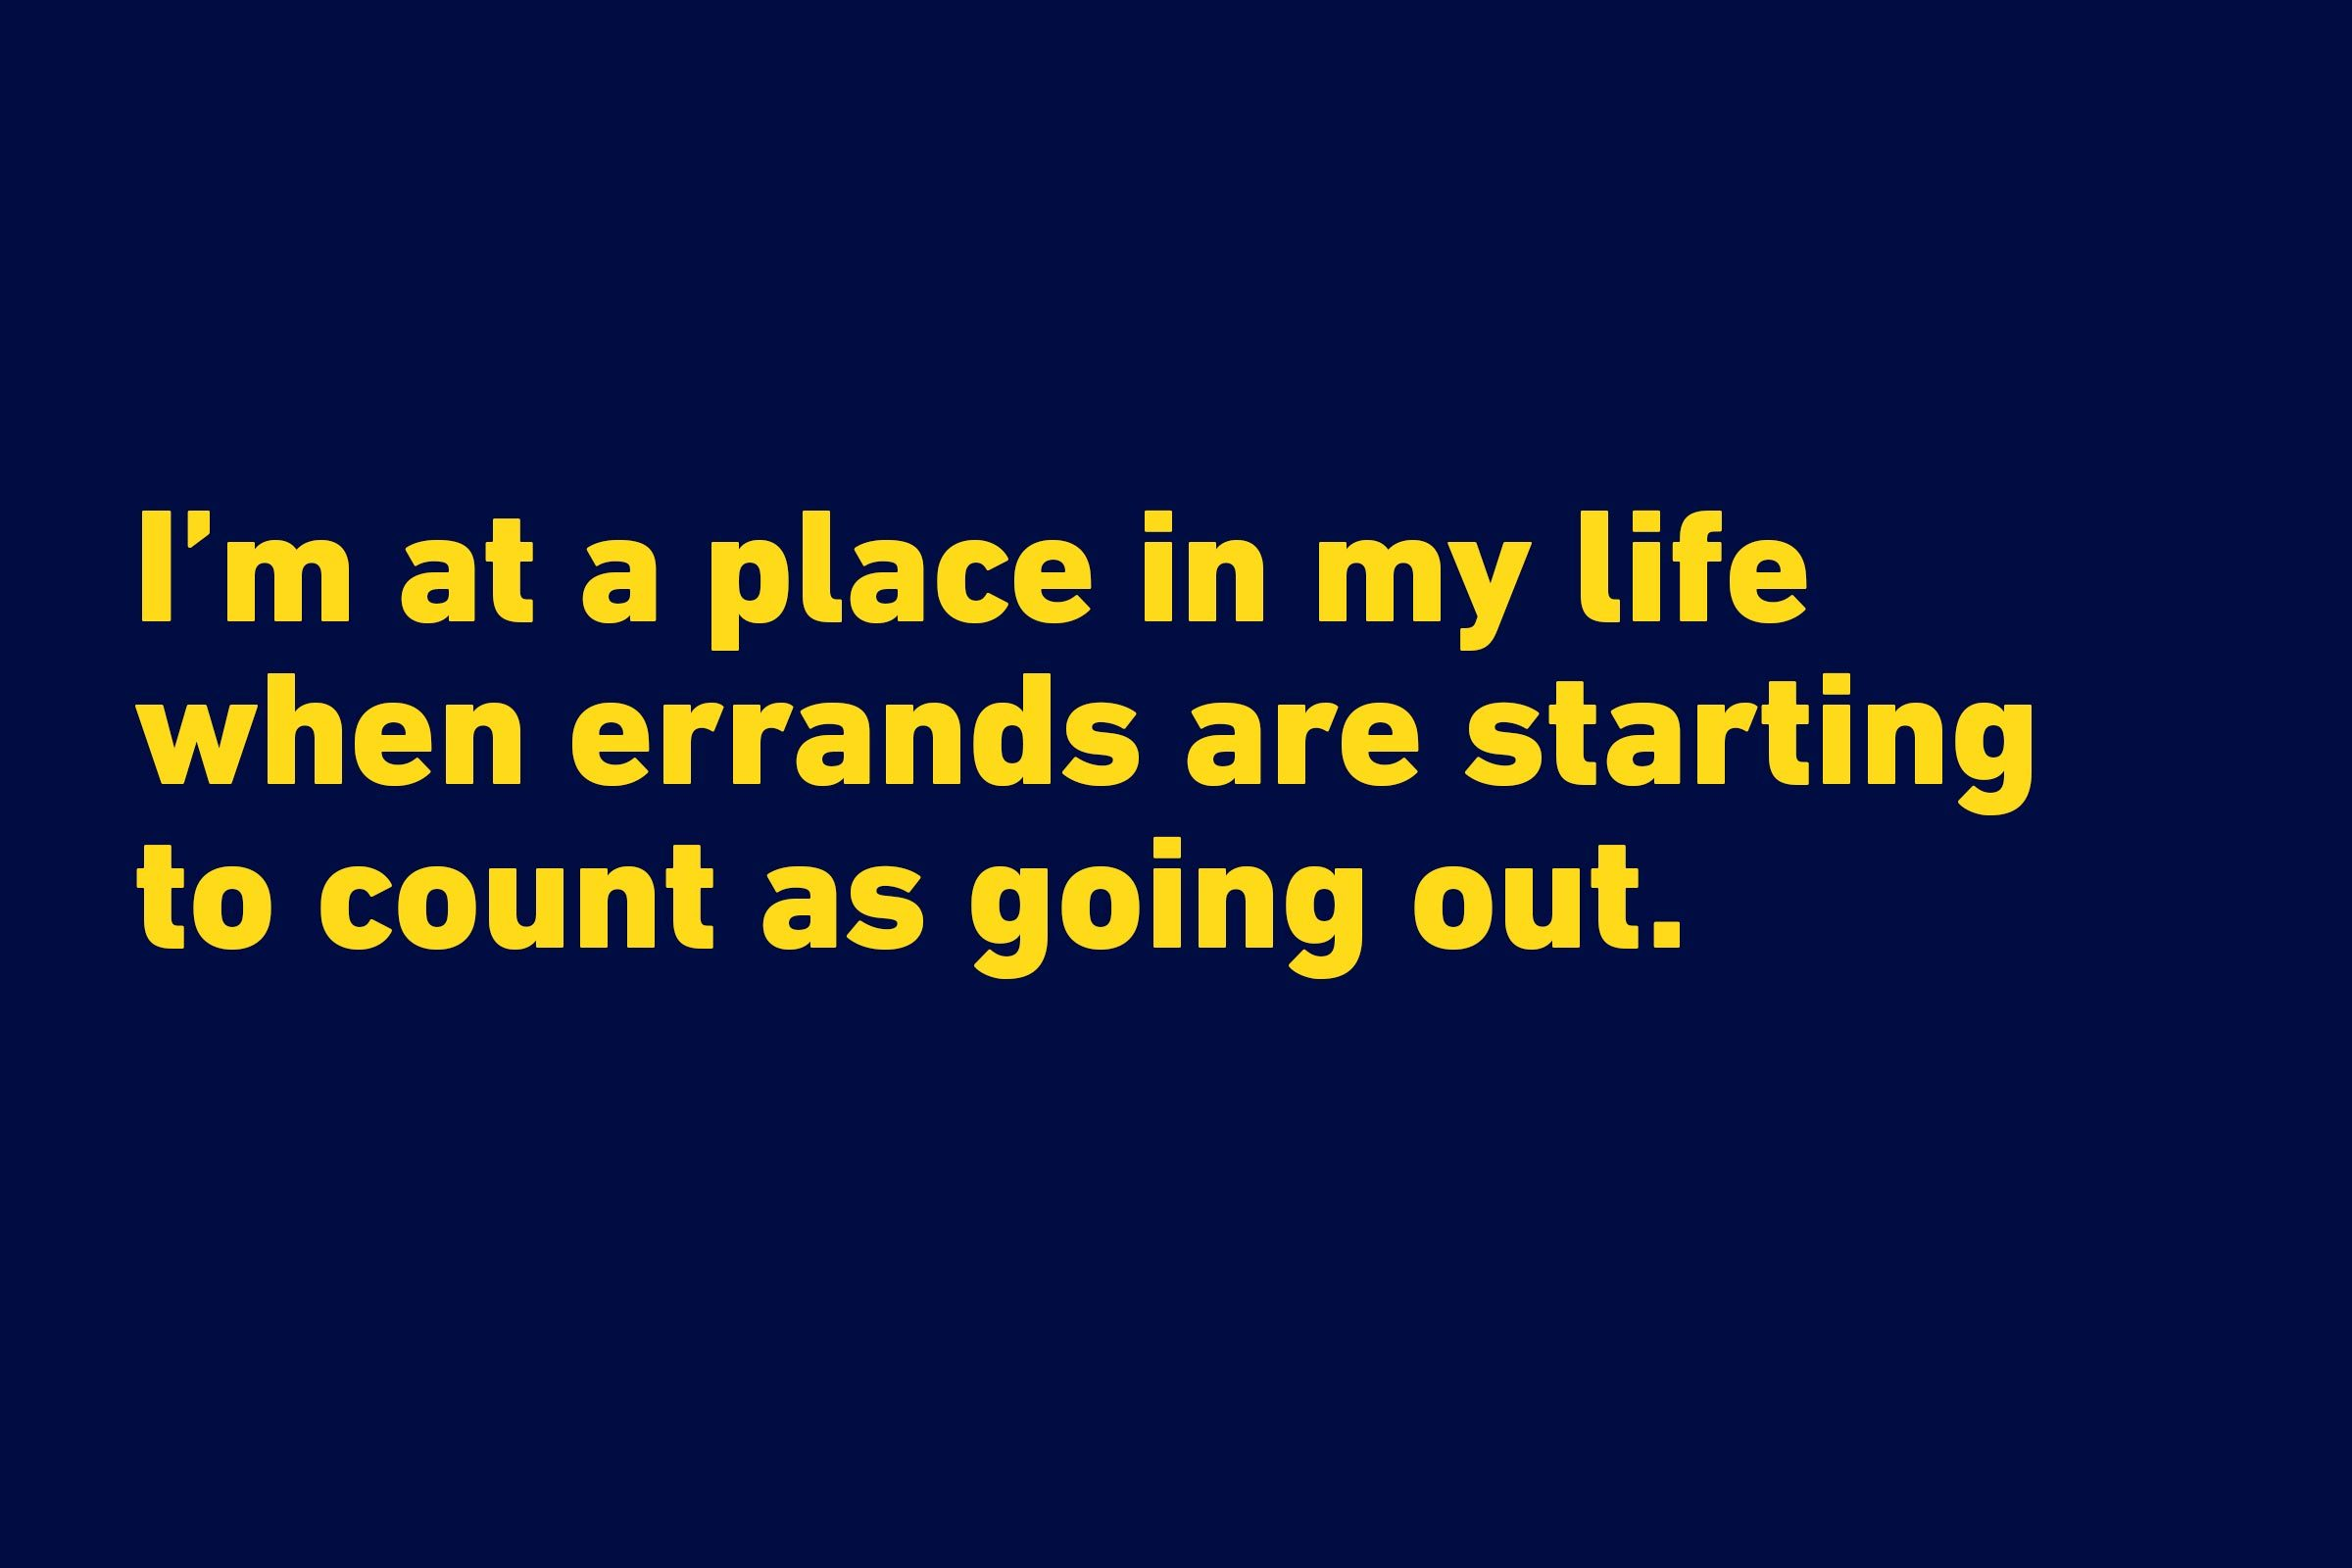 """I'm at a place in my life when errands are starting to count as going out."" —Anonymous"